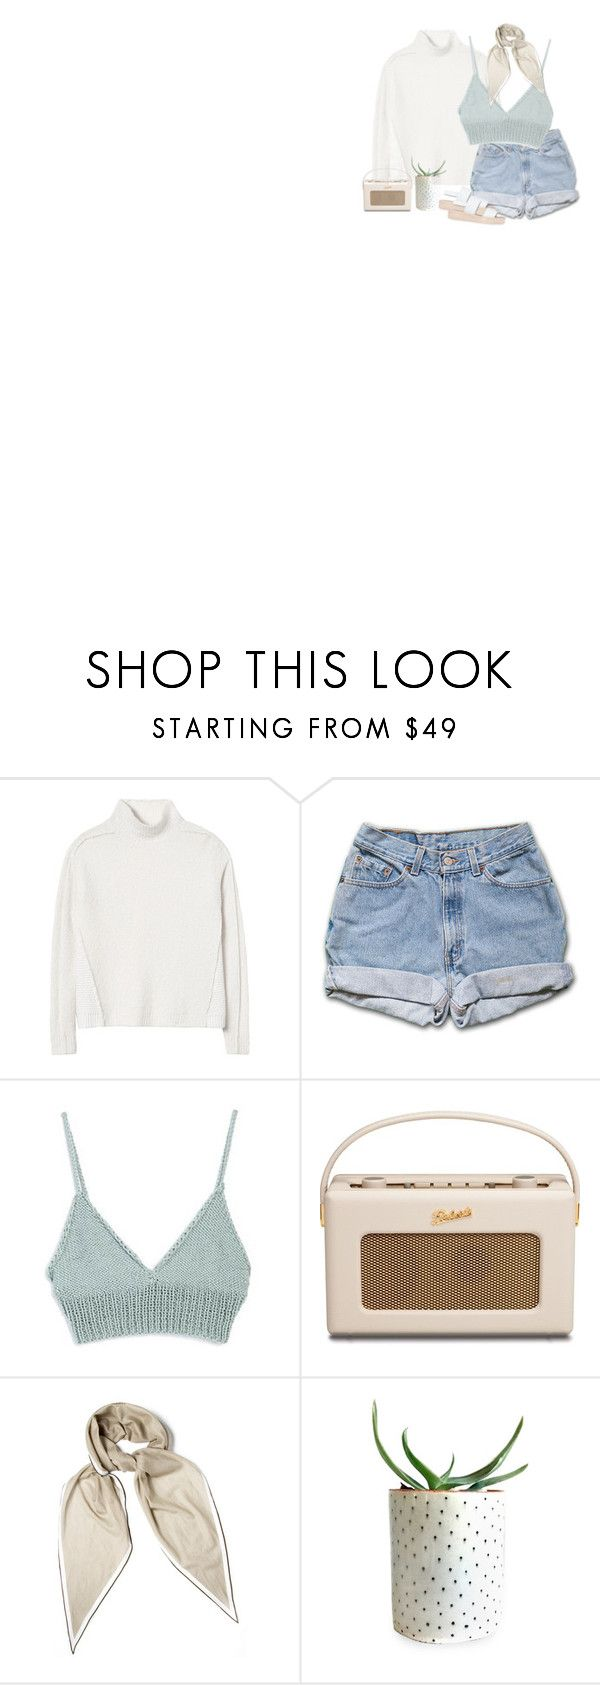 """I had an impulse to clear it all away"" by springlock ❤ liked on Polyvore featuring Rebecca Taylor, Roberts, Hermès and Tony Bianco"